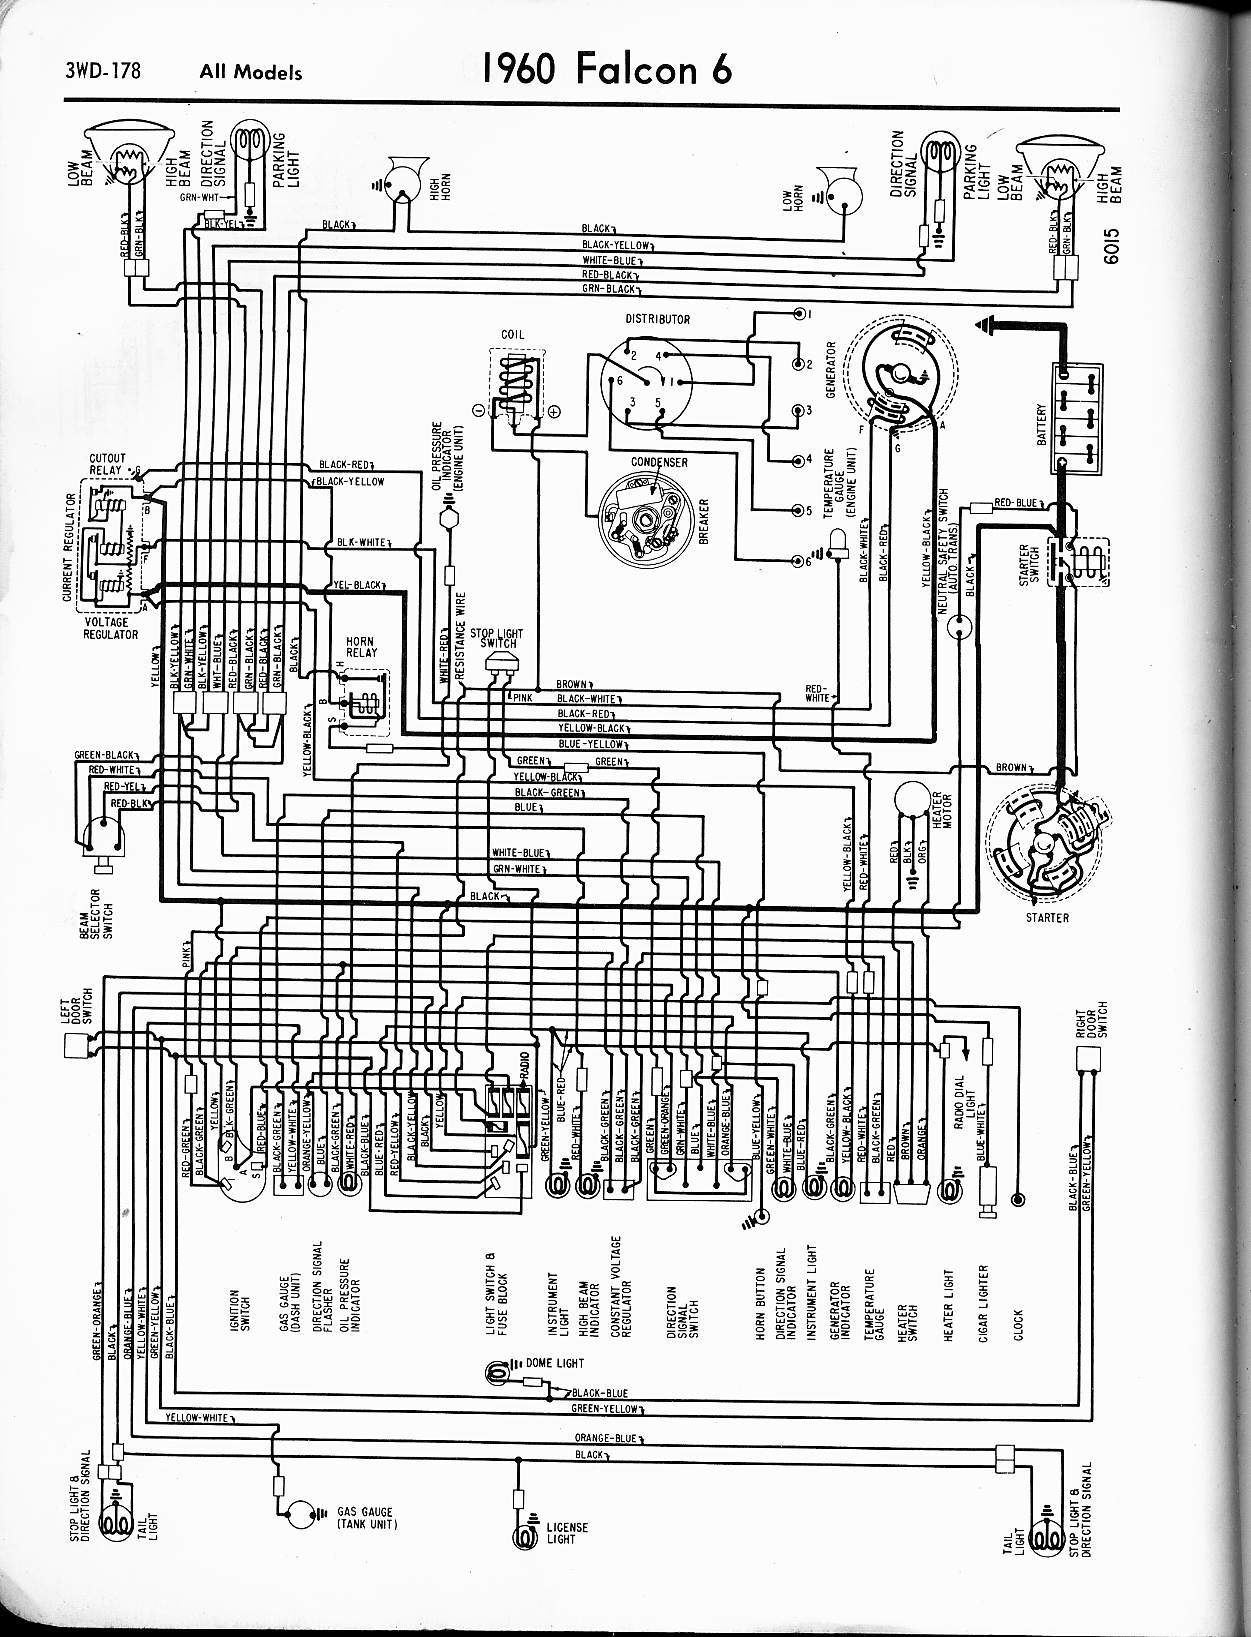 wiring diagram for 2090 case tractor wiring diagram for